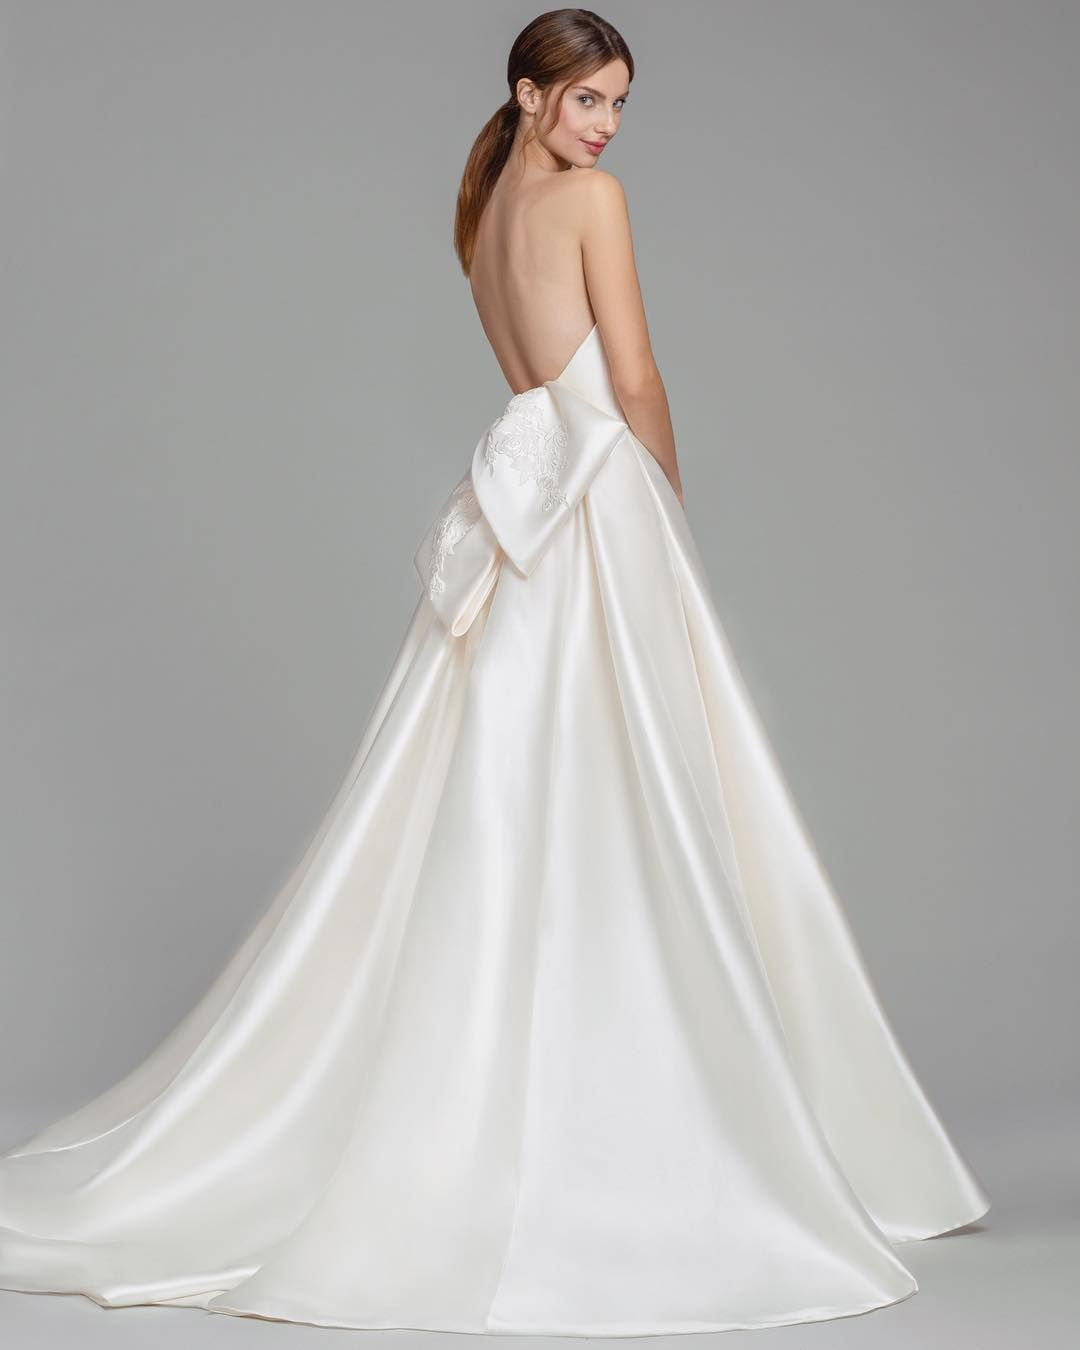 Fall collection bridalsbylori carolinadress the dress to